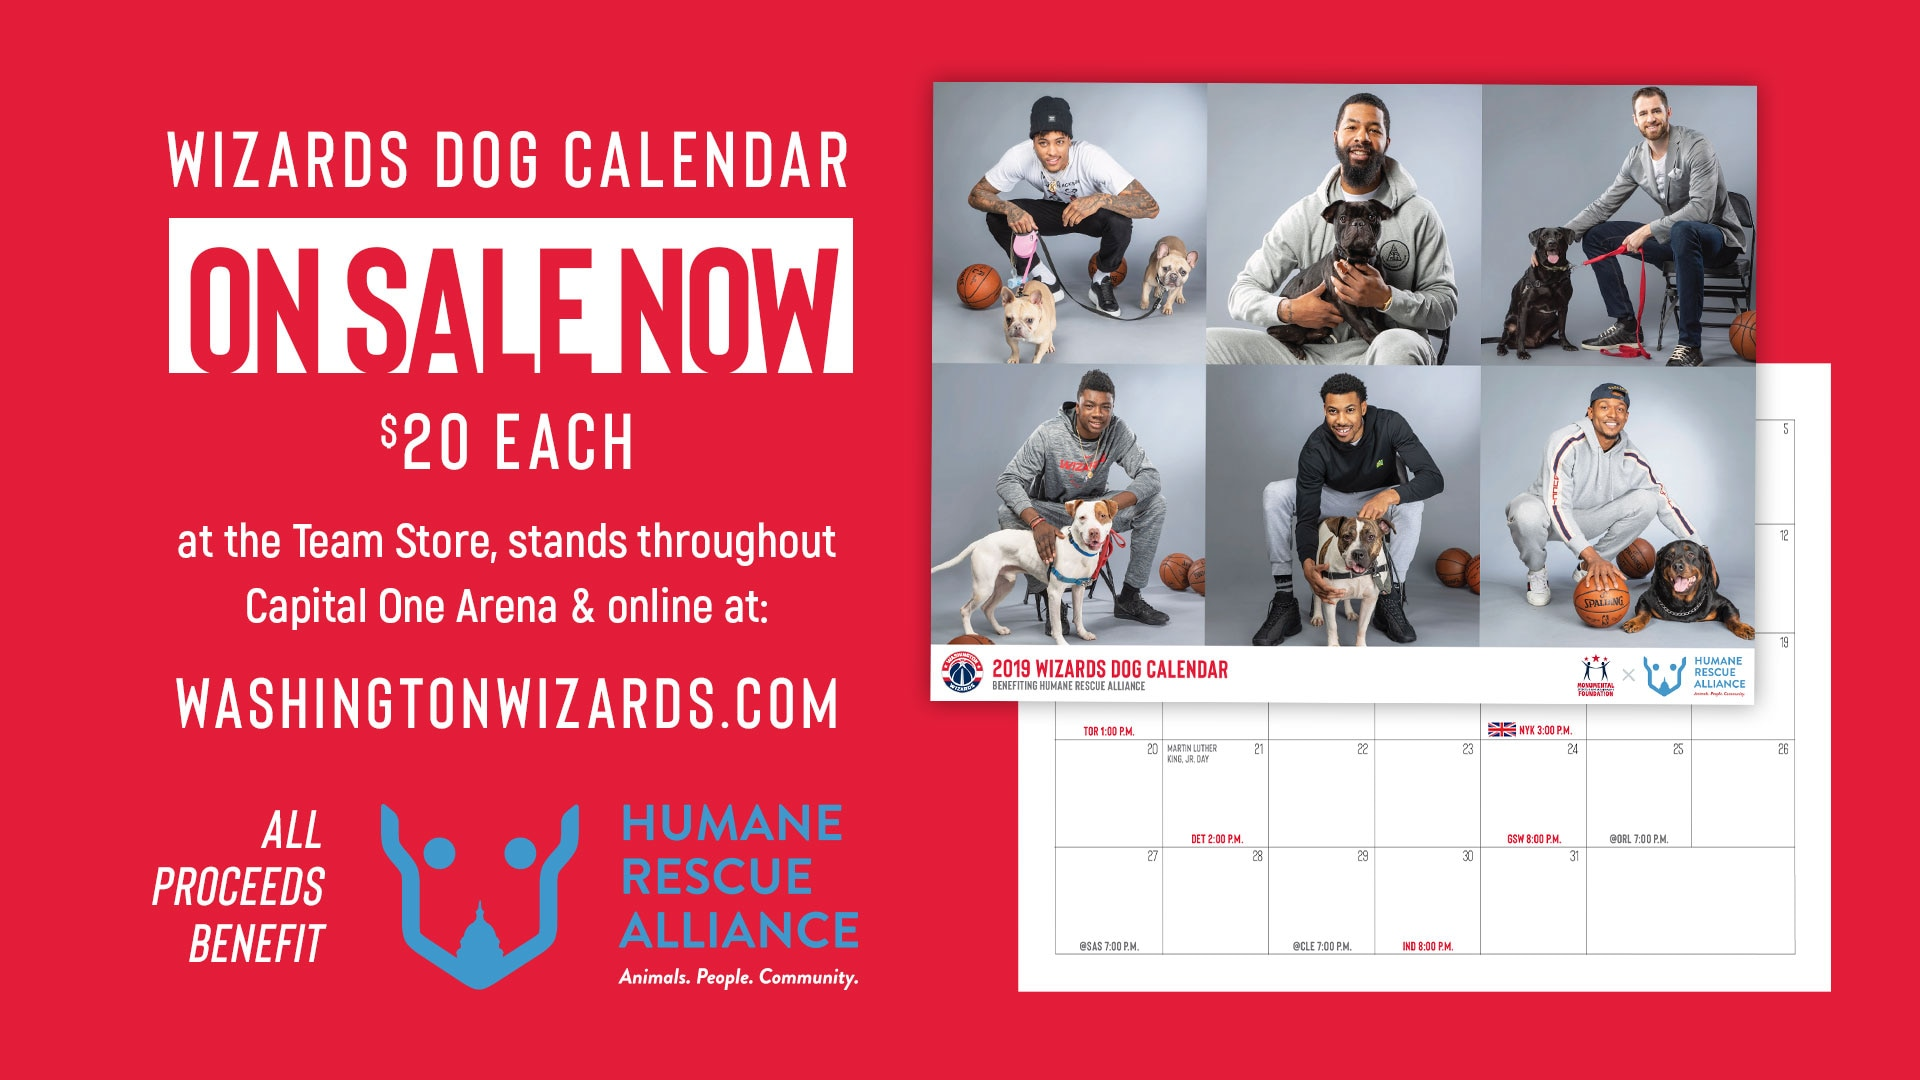 2019 wizards dog calendar on sale now monumental foundation